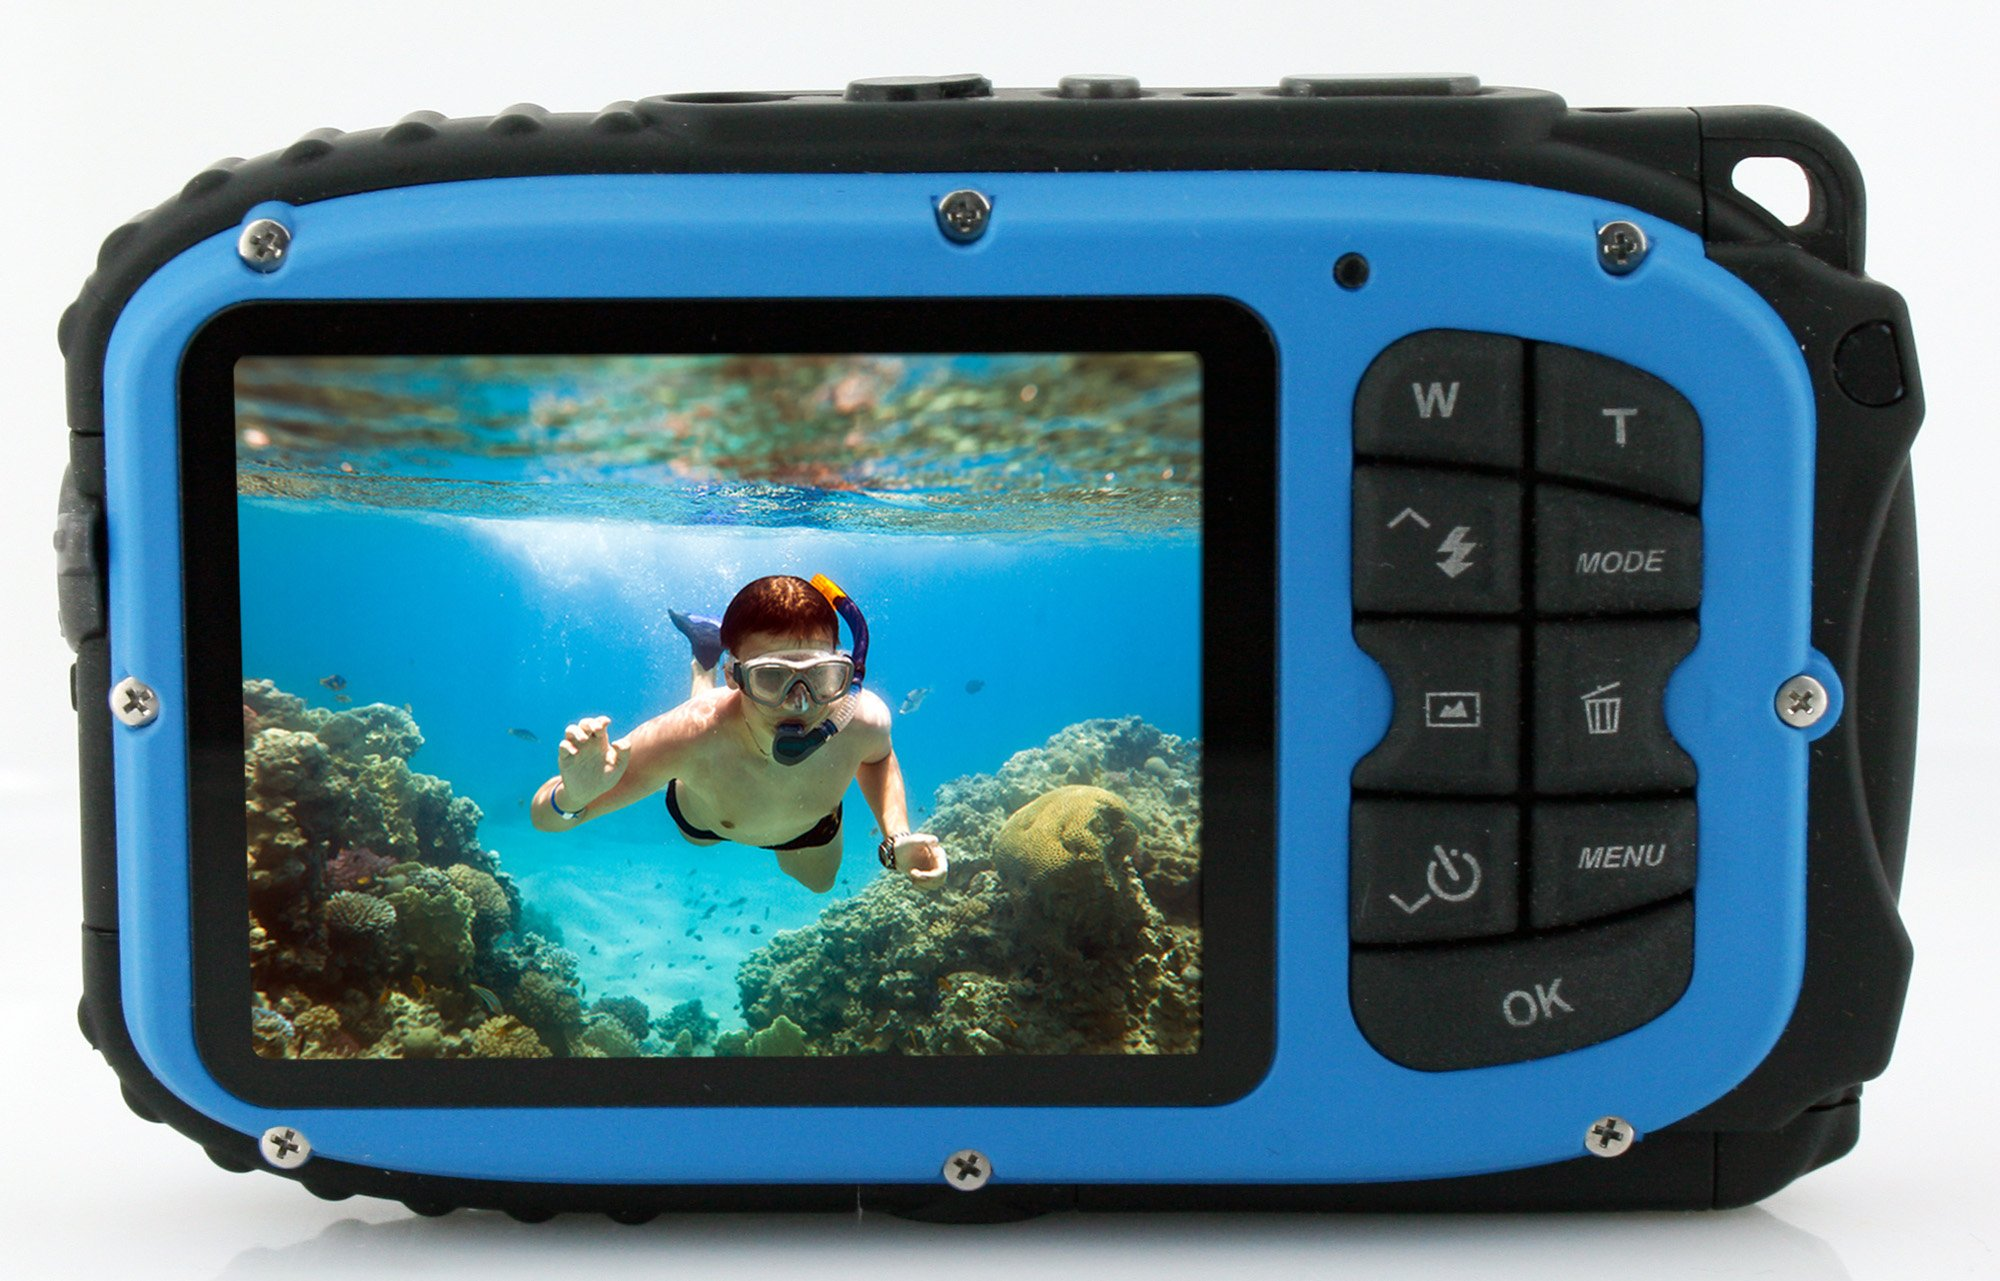 Coleman Xtreme C5WP 16.0 MP 33ft Waterproof Digital Camera, Blue by Coleman (Image #2)